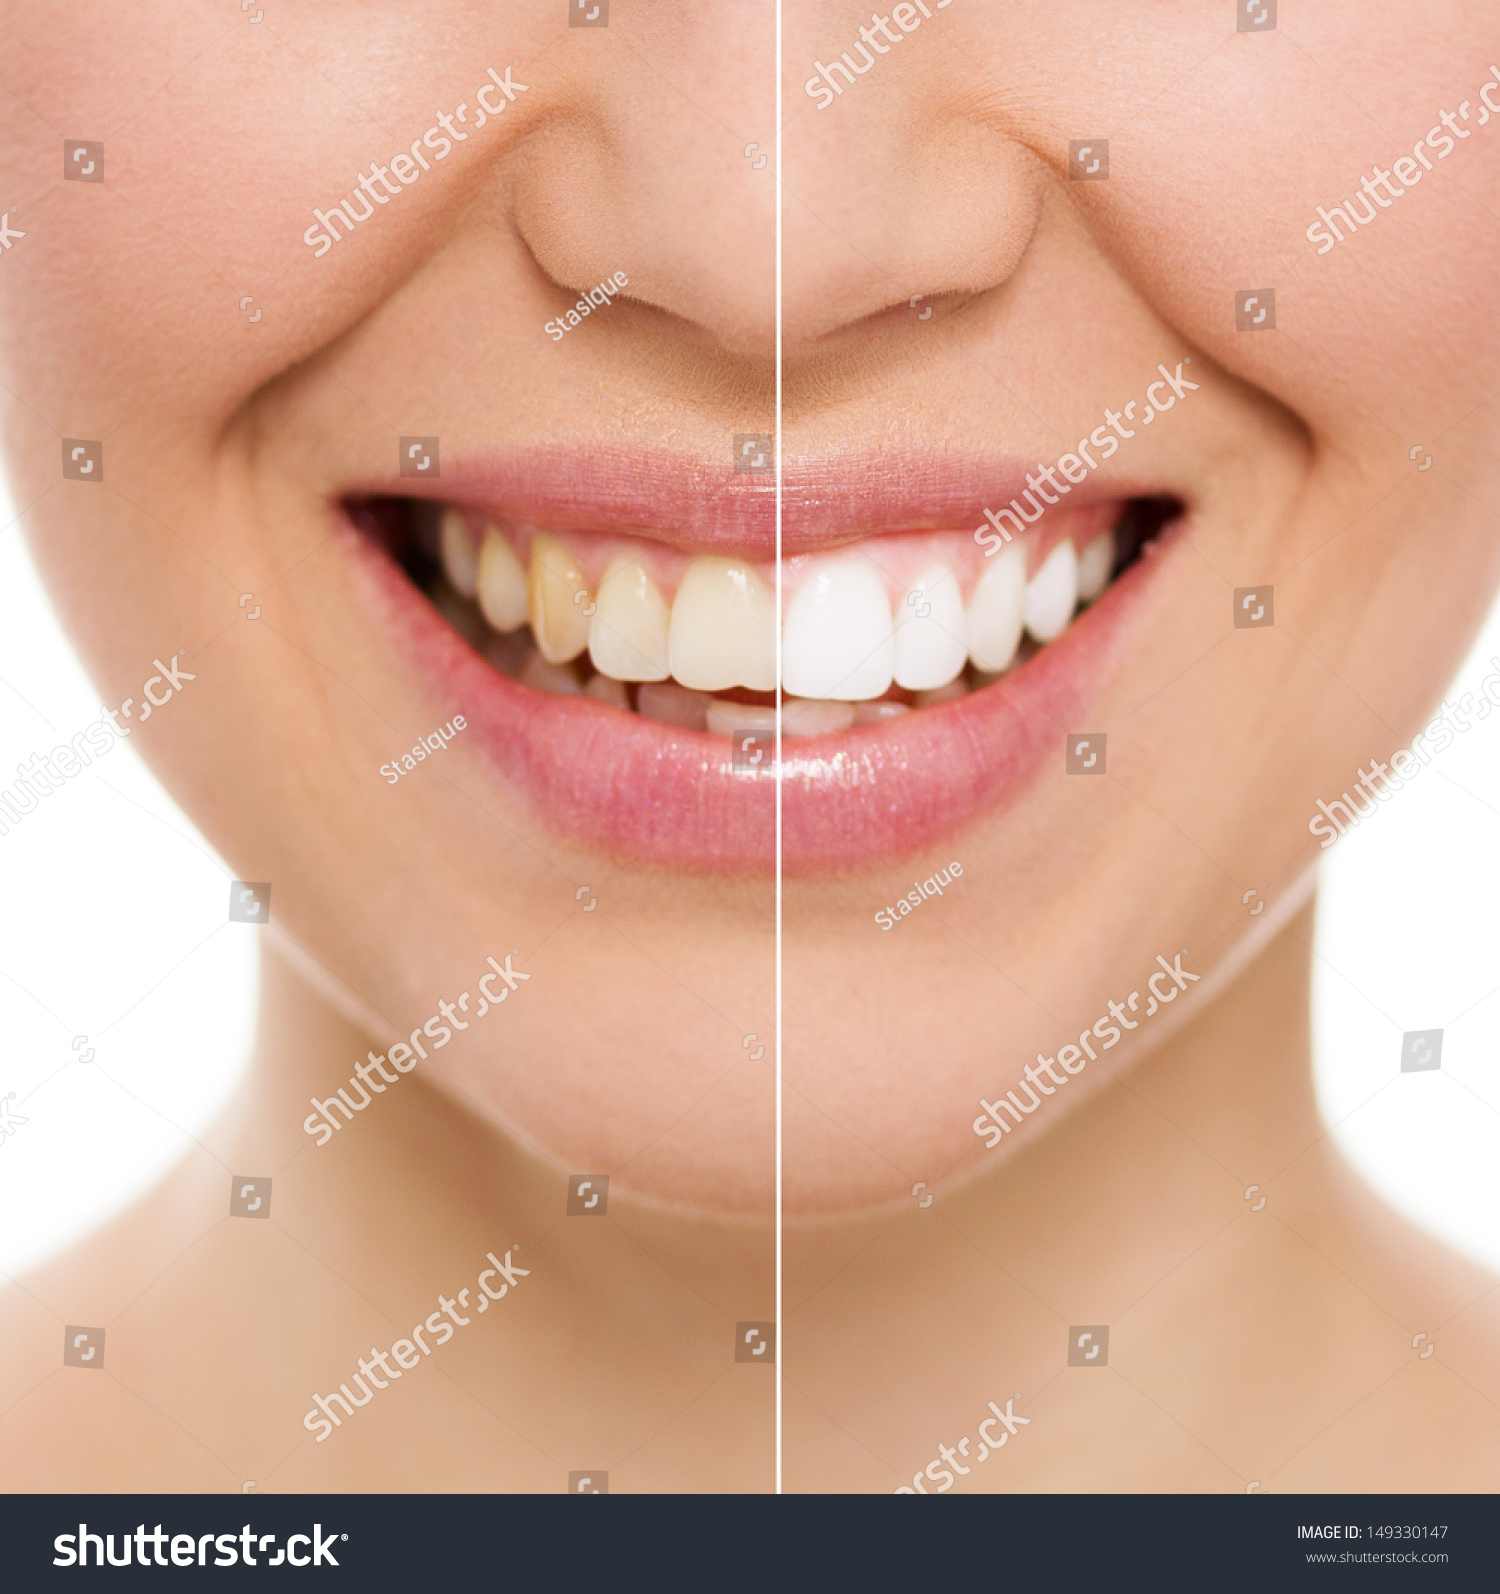 Whitening treatment as is indicated by comparison to the whitening - Before And After Teeth Bleaching Or Whitening Treatment Close Up Of Young Caucasian Female S